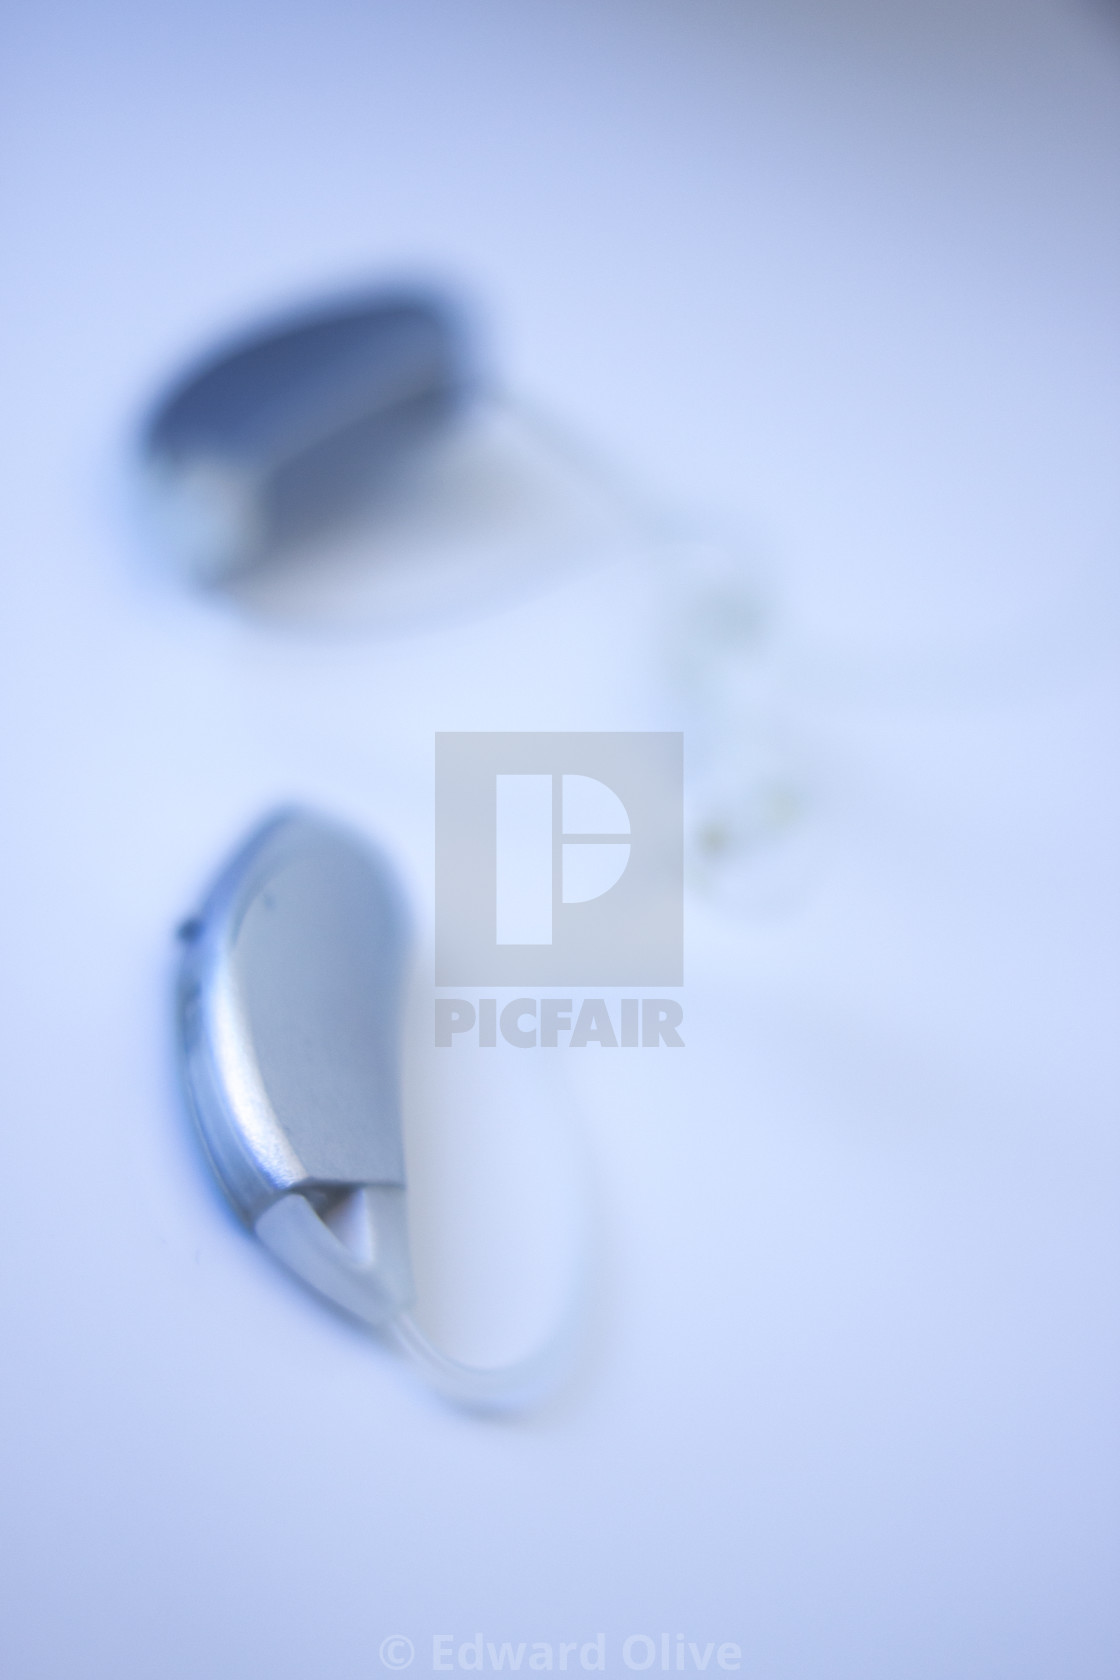 Hearing Aid For Deafness License For 3099 On Picfair